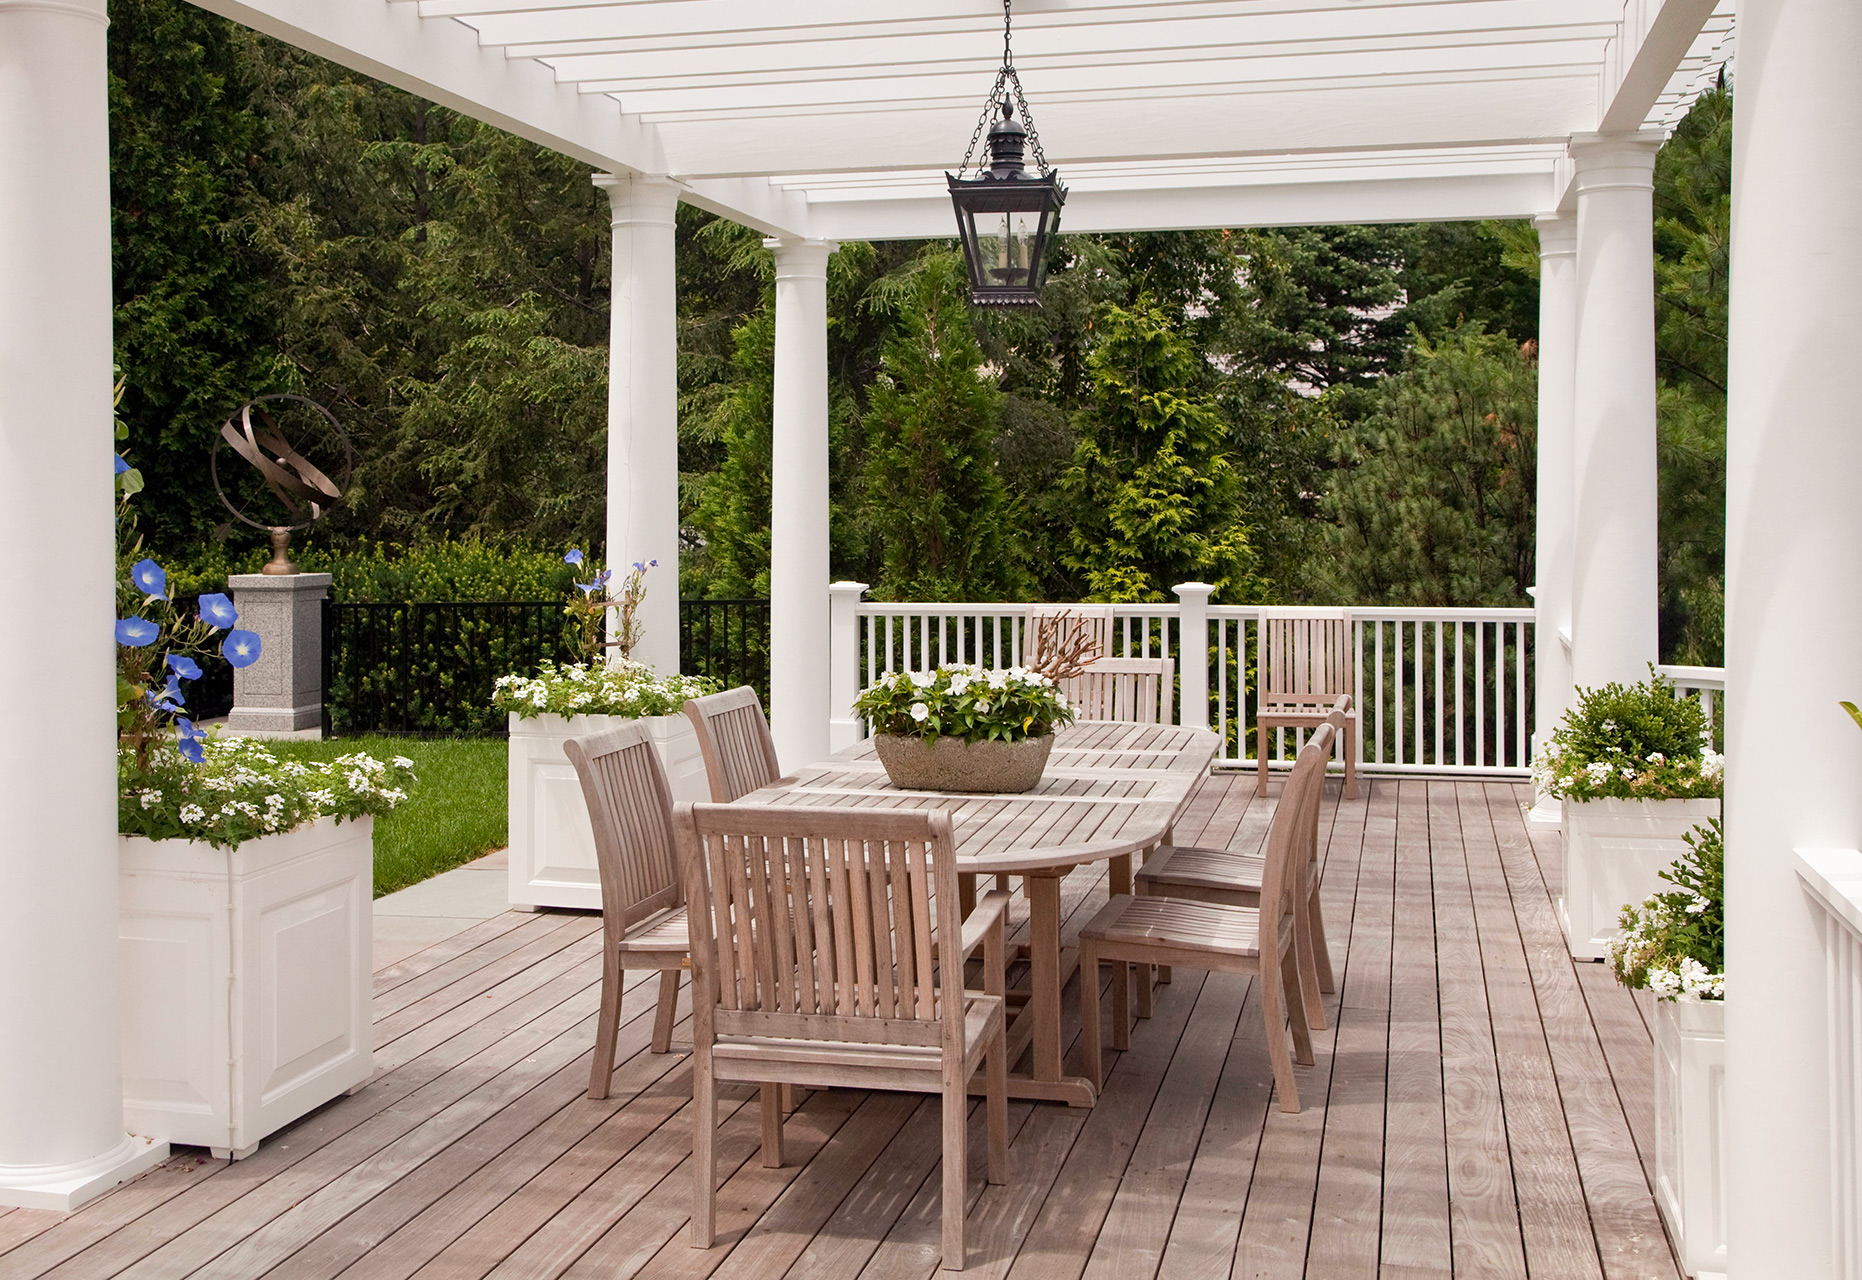 Pergola Decorating Ideas